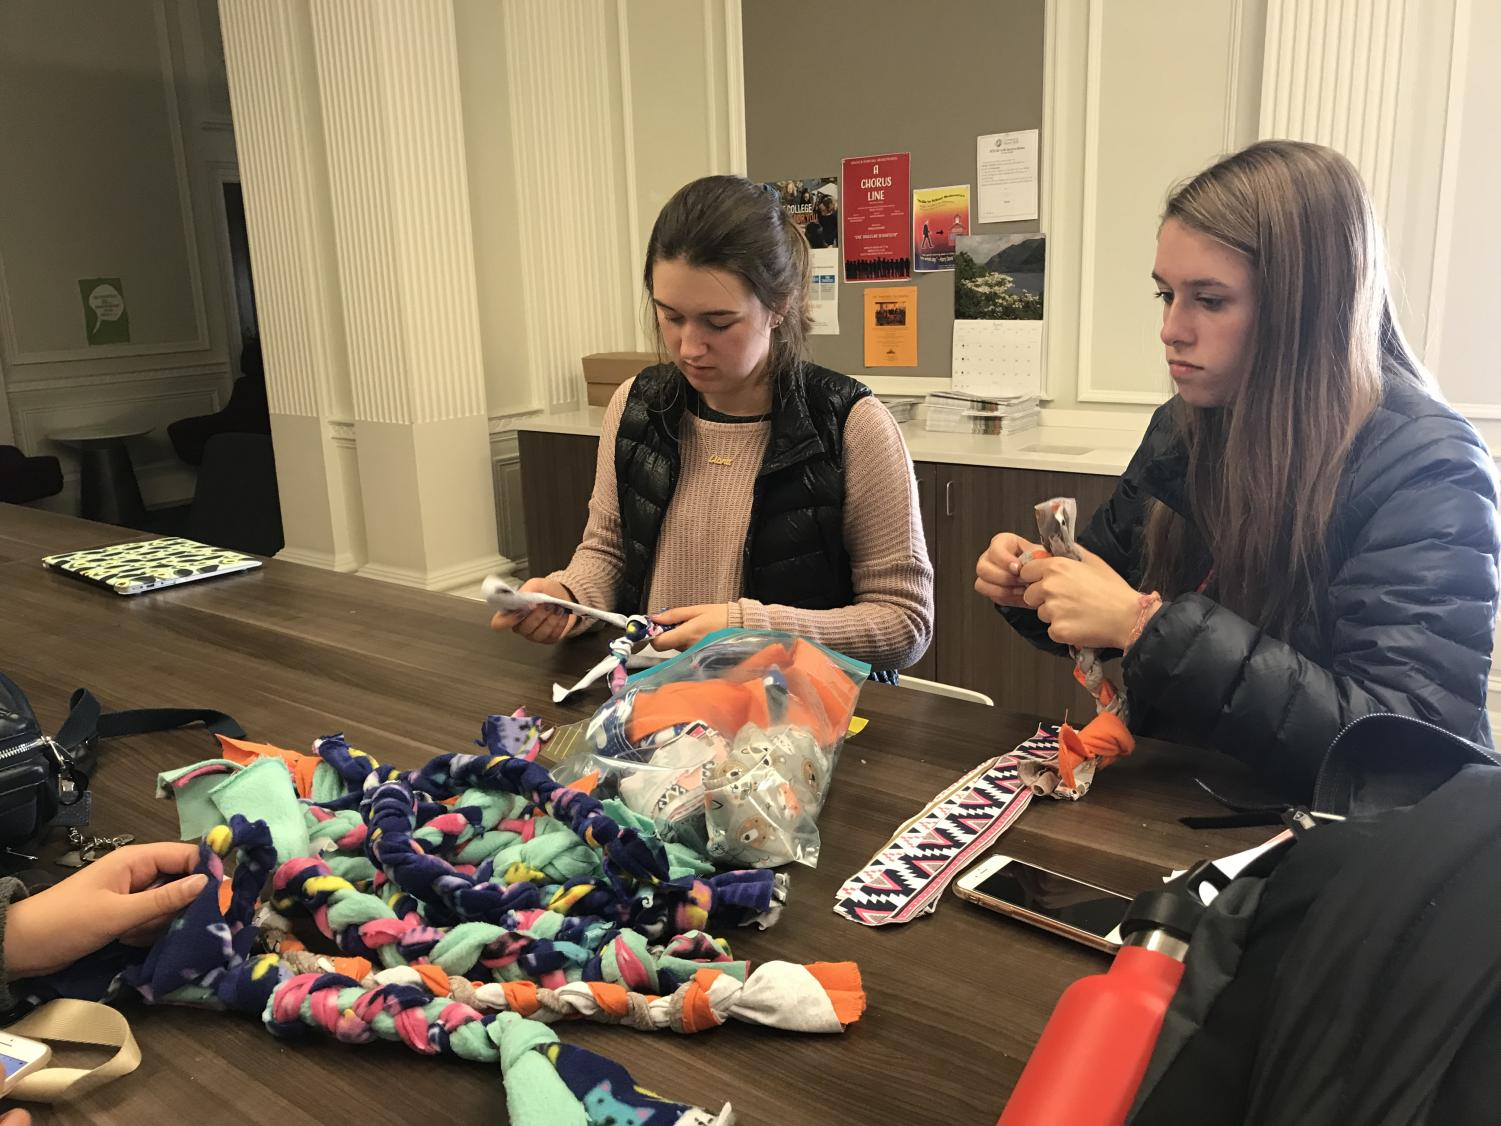 Sophomores Ella Beard and Peyton House create toys for cats and dogs by weaving pieces of fabrics tightly together. All 27 toys produced today will be donated to the Marin Humane Society shelter for pets.